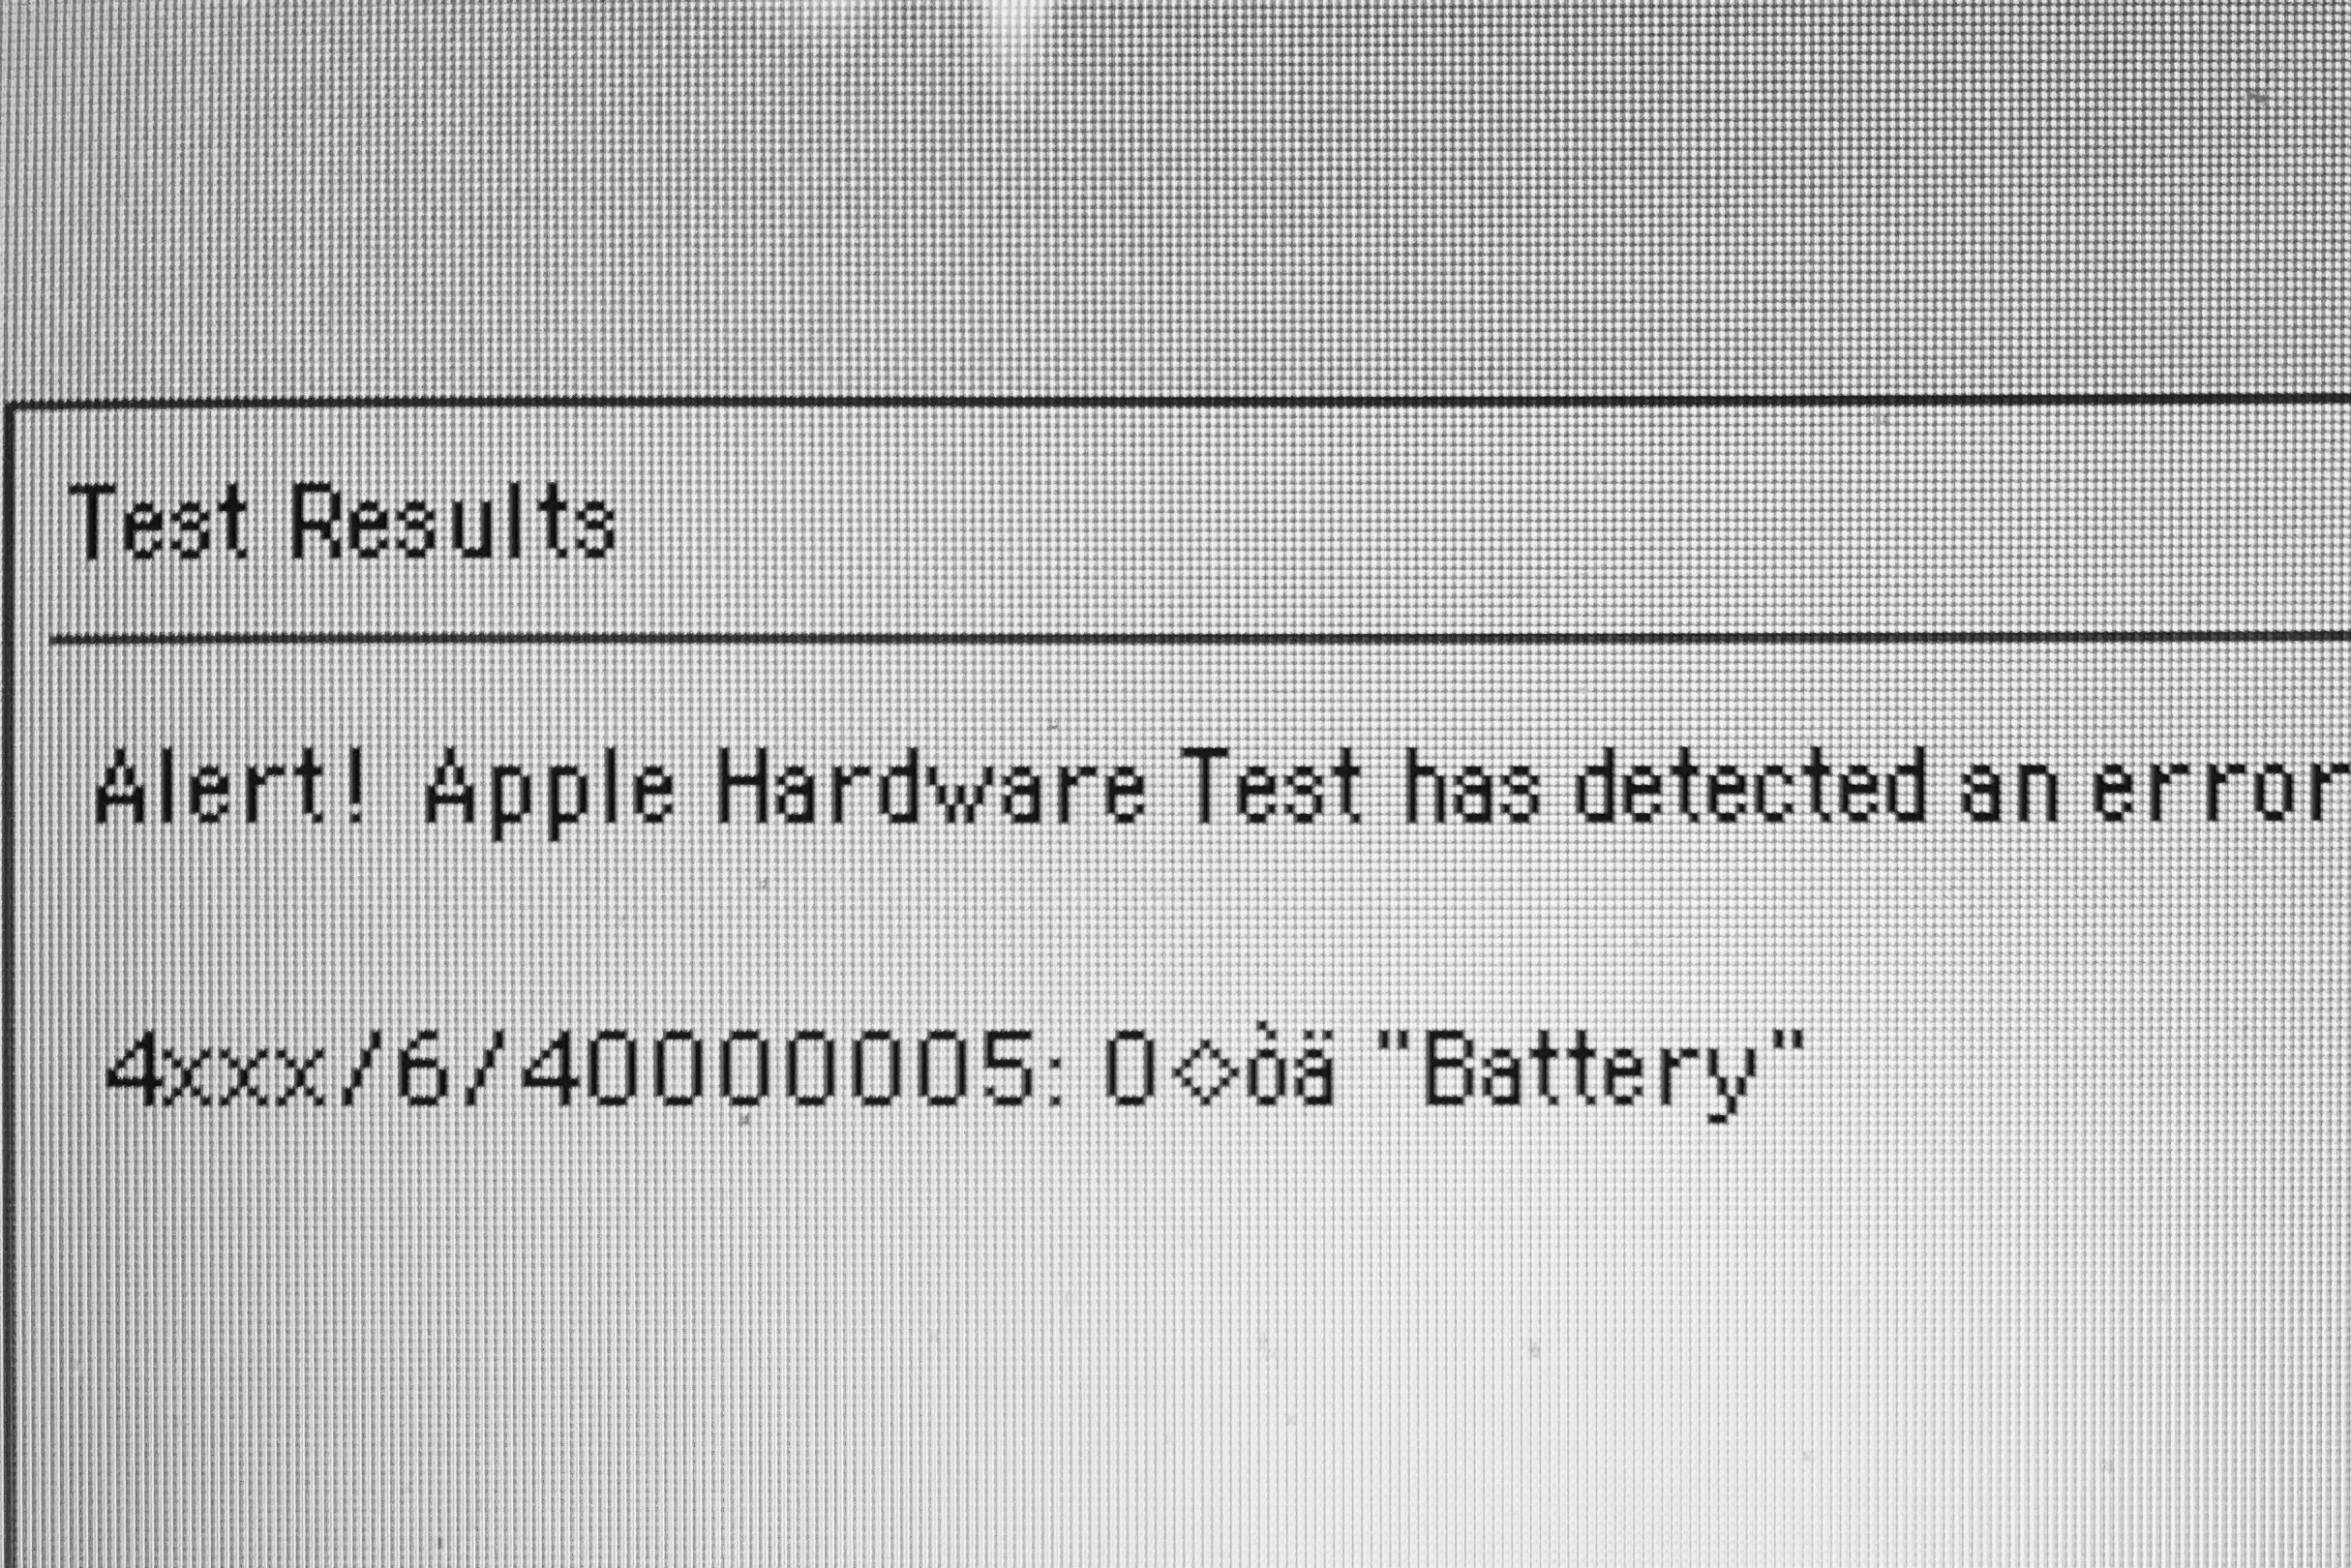 4xxx/6/40000005: Battery error during onl… - Apple Community